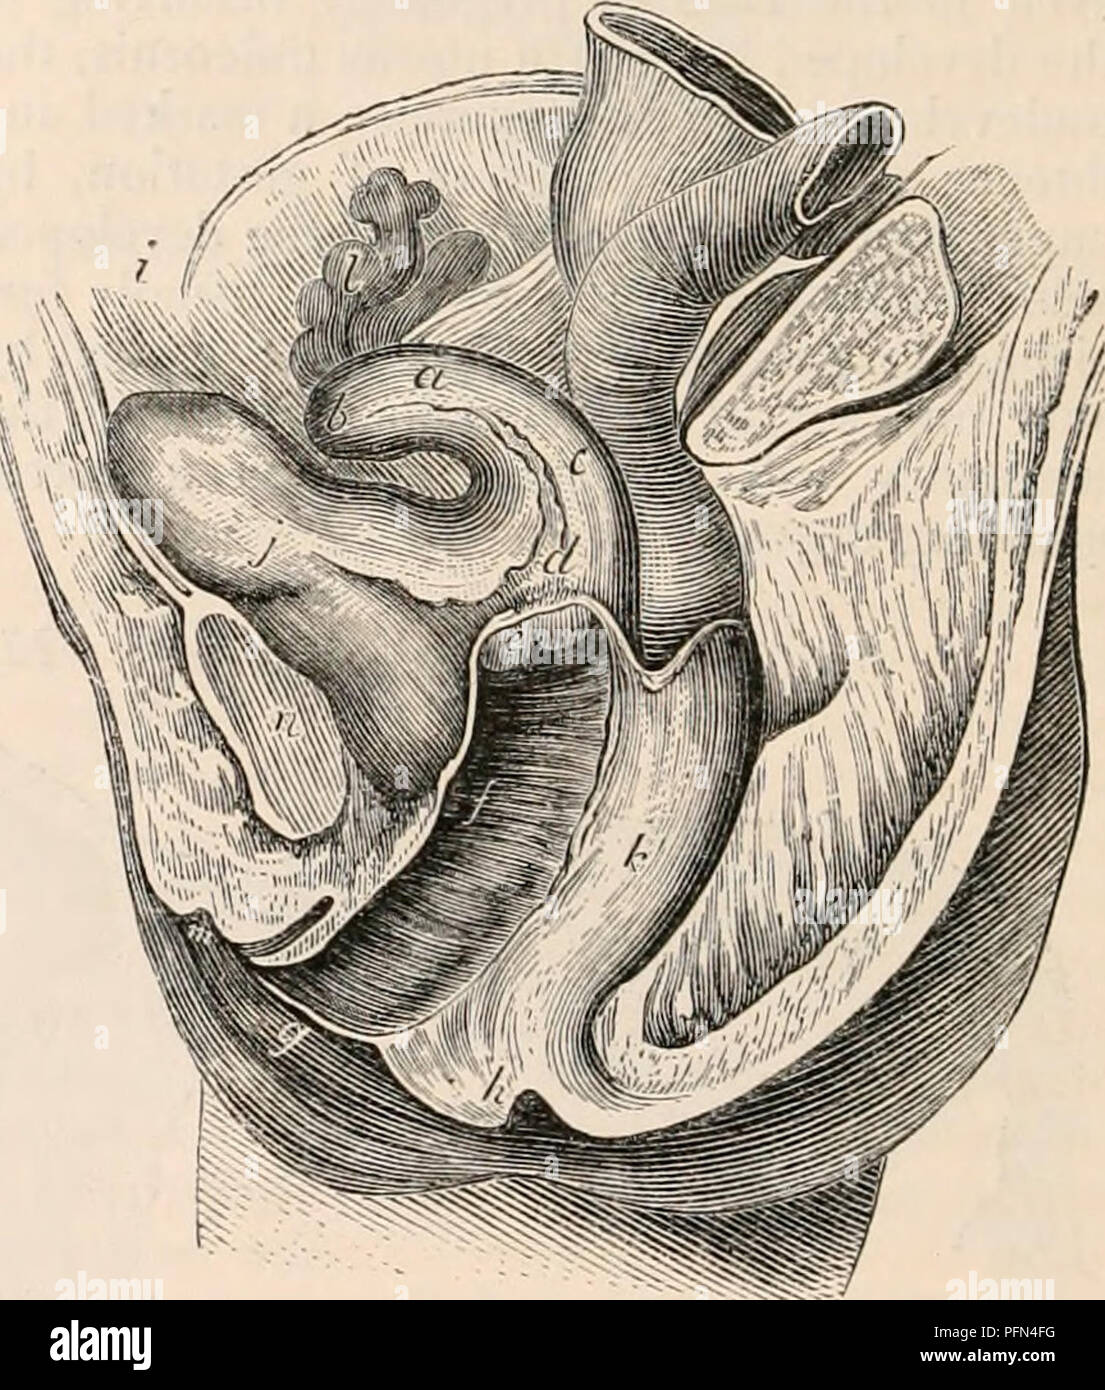 . The cyclopædia of anatomy and physiology. Anatomy; Physiology; Zoology. less horizontally, is directed towards the sym- physis pubis, while, according to the degree of inflexion, the anterior wall of the uterus is brought near to, or in contact with, the cervix in front, while the posterior wall looks up- wards, corresponding more or less with the plane of the pelvic brim. The point of cur- vature is always at the line of junction of the body with the cervix uteri, and here an angle more or less acute is formed. Fig. 466., giving a lateral view of the anti- flexed uterus, exhibits the relati - Stock Image